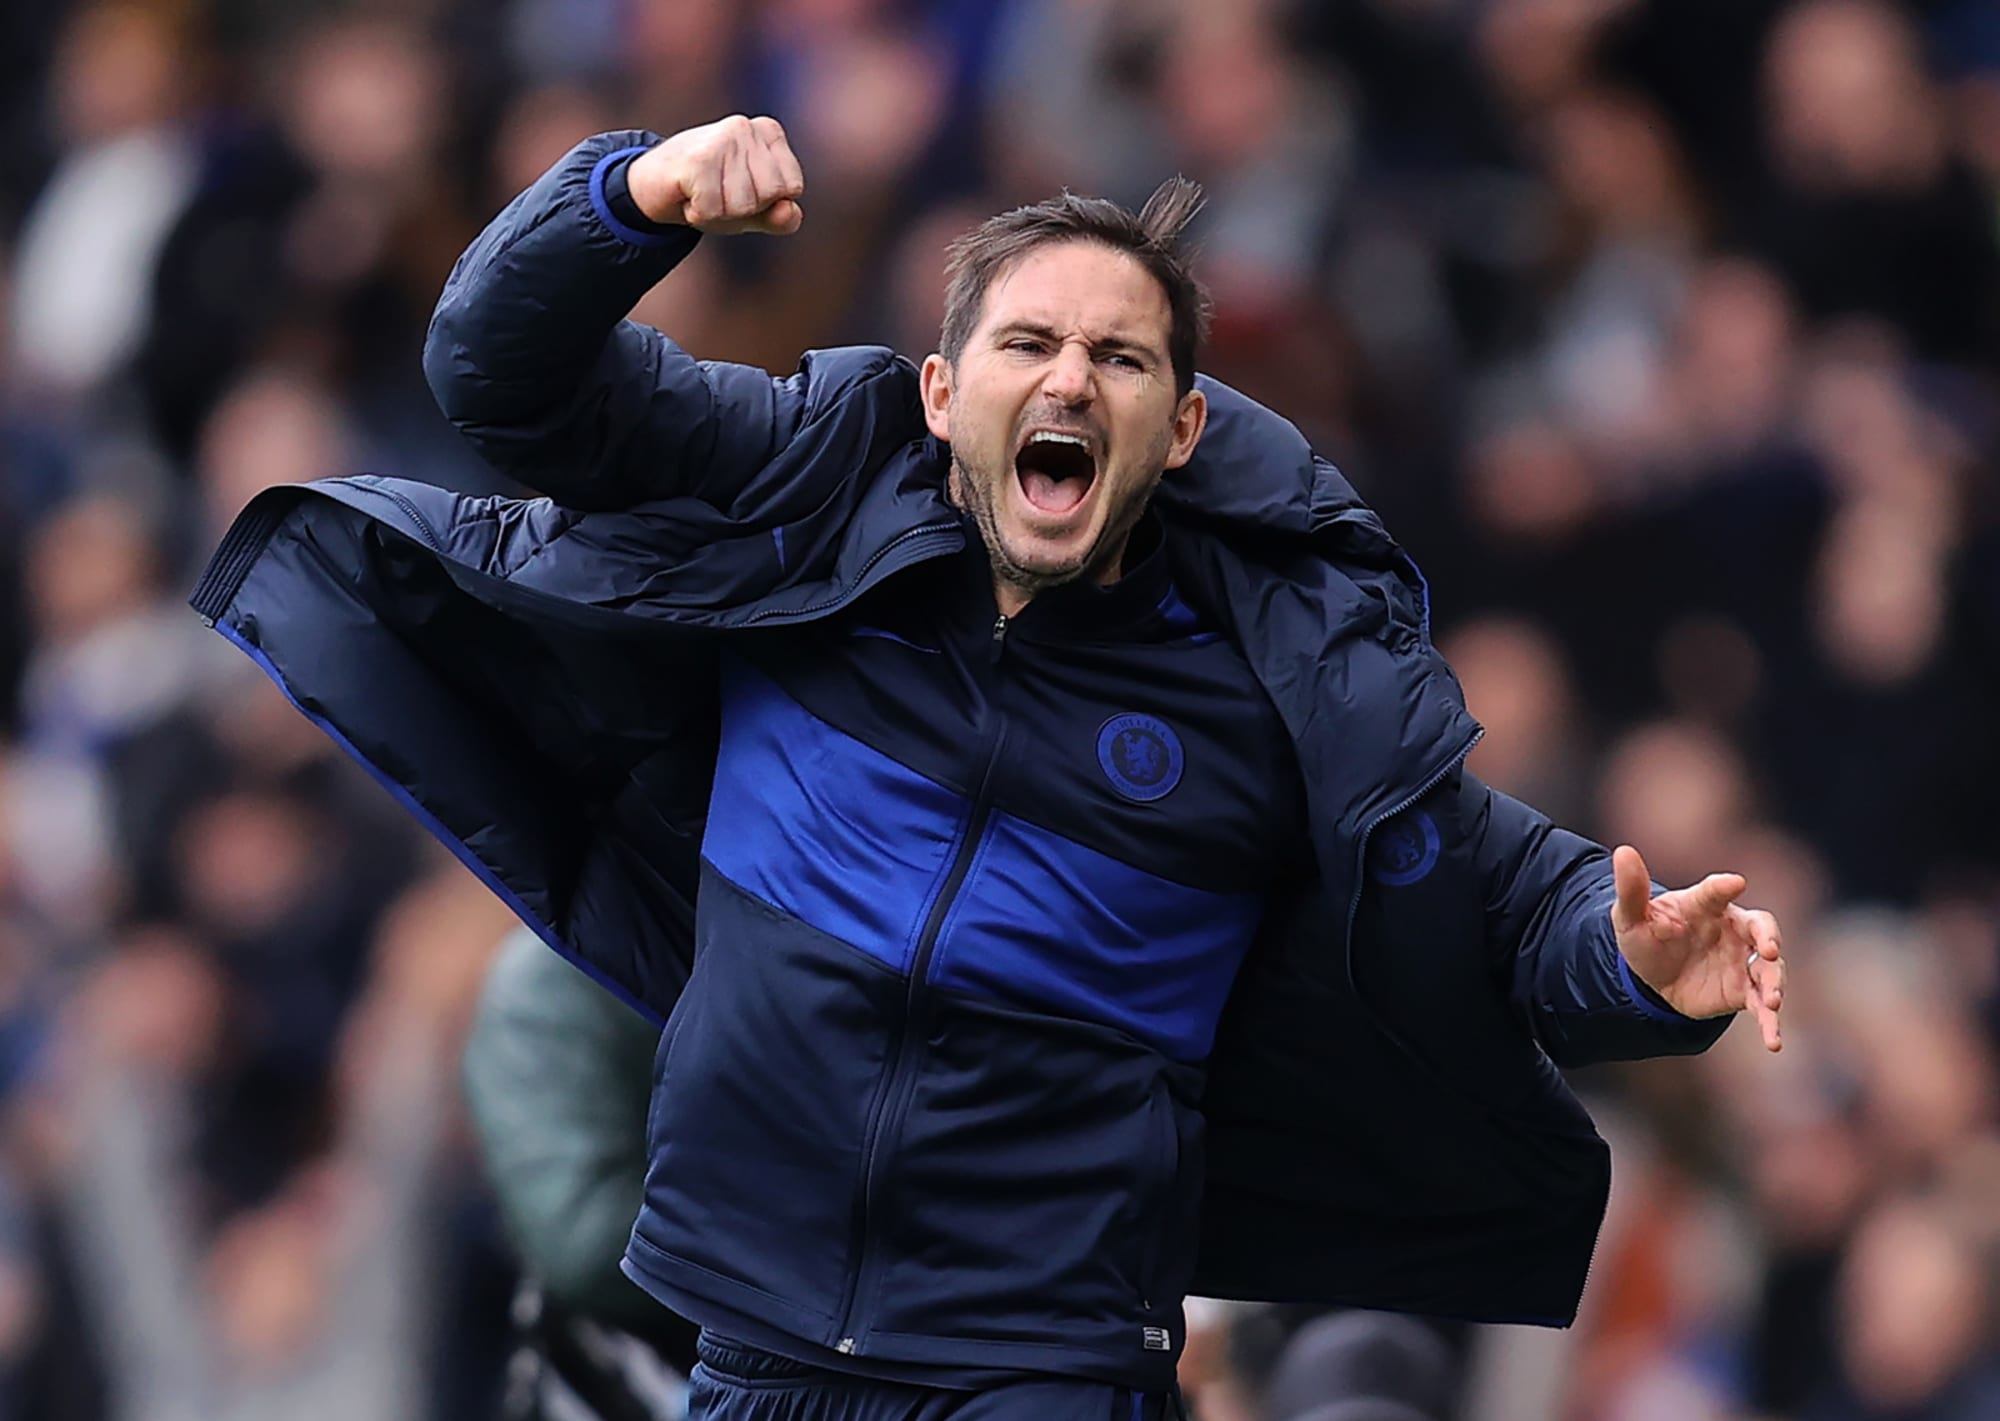 Chelsea making top four: A job only Frank Lampard could accomplish